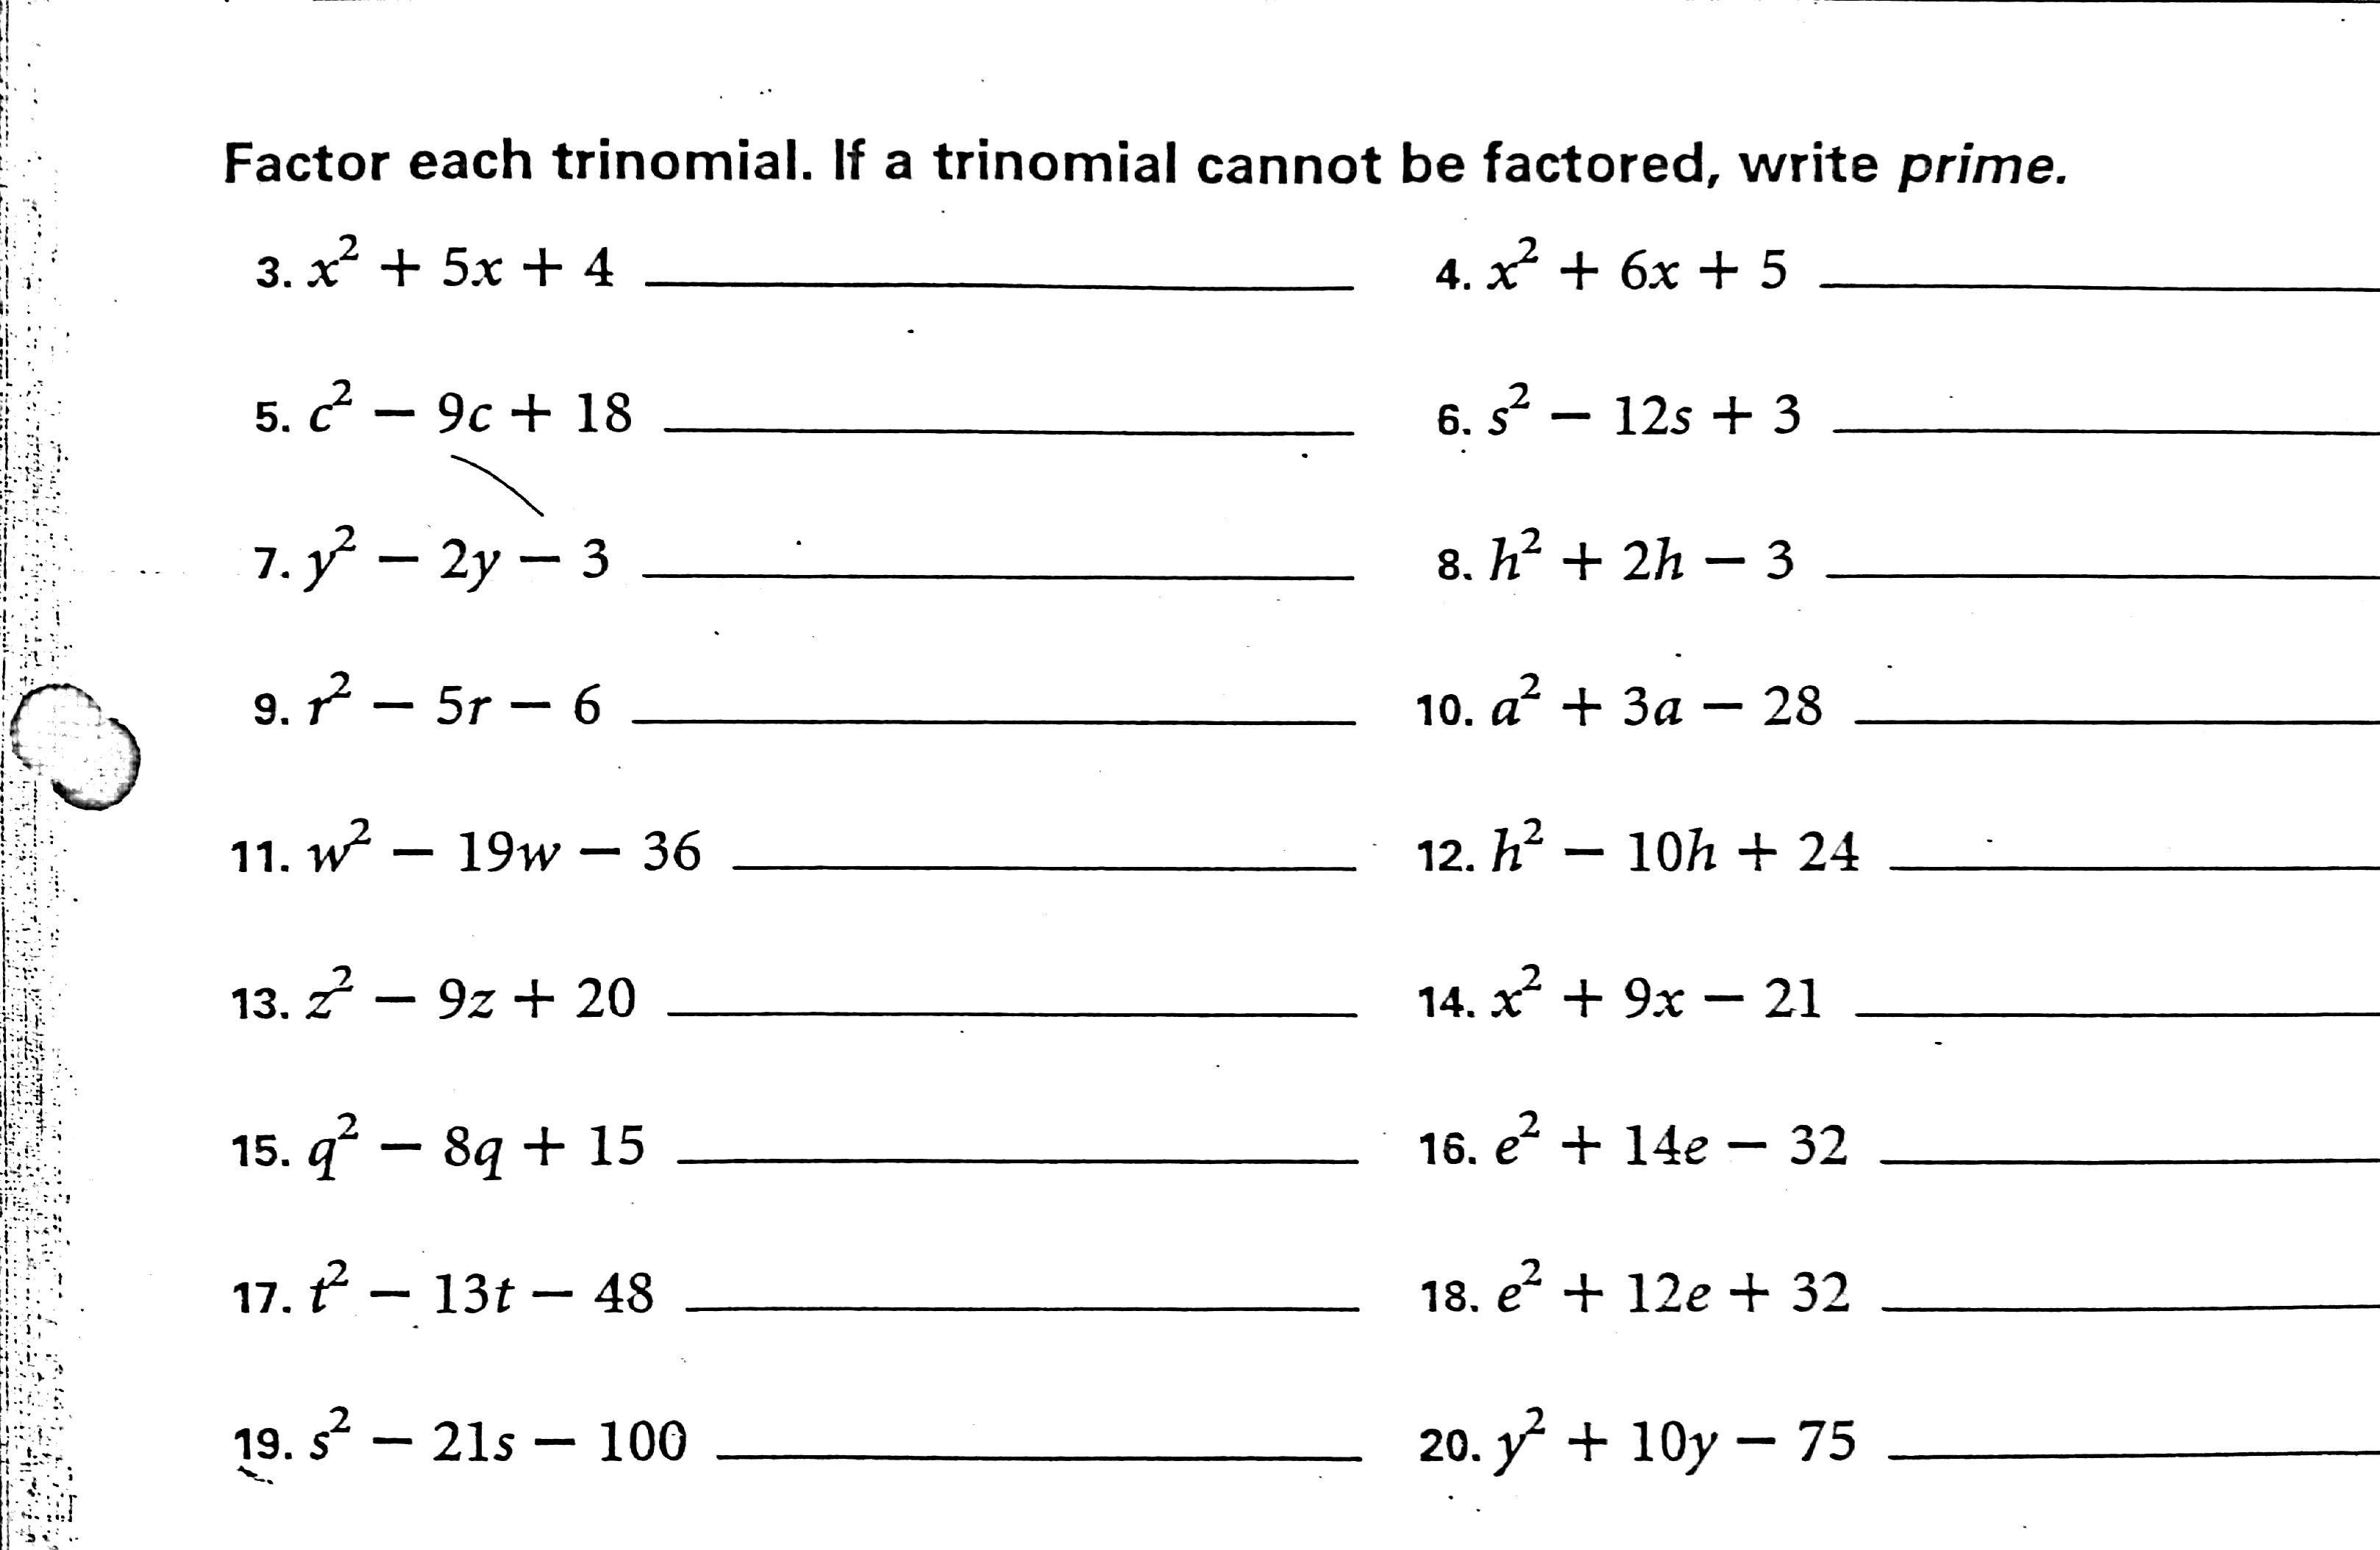 Proatmealus  Mesmerizing Factoring Worksheet  Delwfgcom With Outstanding Factoring Polynomials Practice Worksheet With Answers Coterraneo With Astonishing Th Grade Text Structure Worksheets Also Vba Excel Copy Worksheet To Another Workbook In Addition I Before E Except After C Worksheet And Th Grade Sentence Structure Worksheets As Well As Short O Worksheets Free Additionally Handwriting Without Tears Free Worksheets From Delwfgcom With Proatmealus  Outstanding Factoring Worksheet  Delwfgcom With Astonishing Factoring Polynomials Practice Worksheet With Answers Coterraneo And Mesmerizing Th Grade Text Structure Worksheets Also Vba Excel Copy Worksheet To Another Workbook In Addition I Before E Except After C Worksheet From Delwfgcom